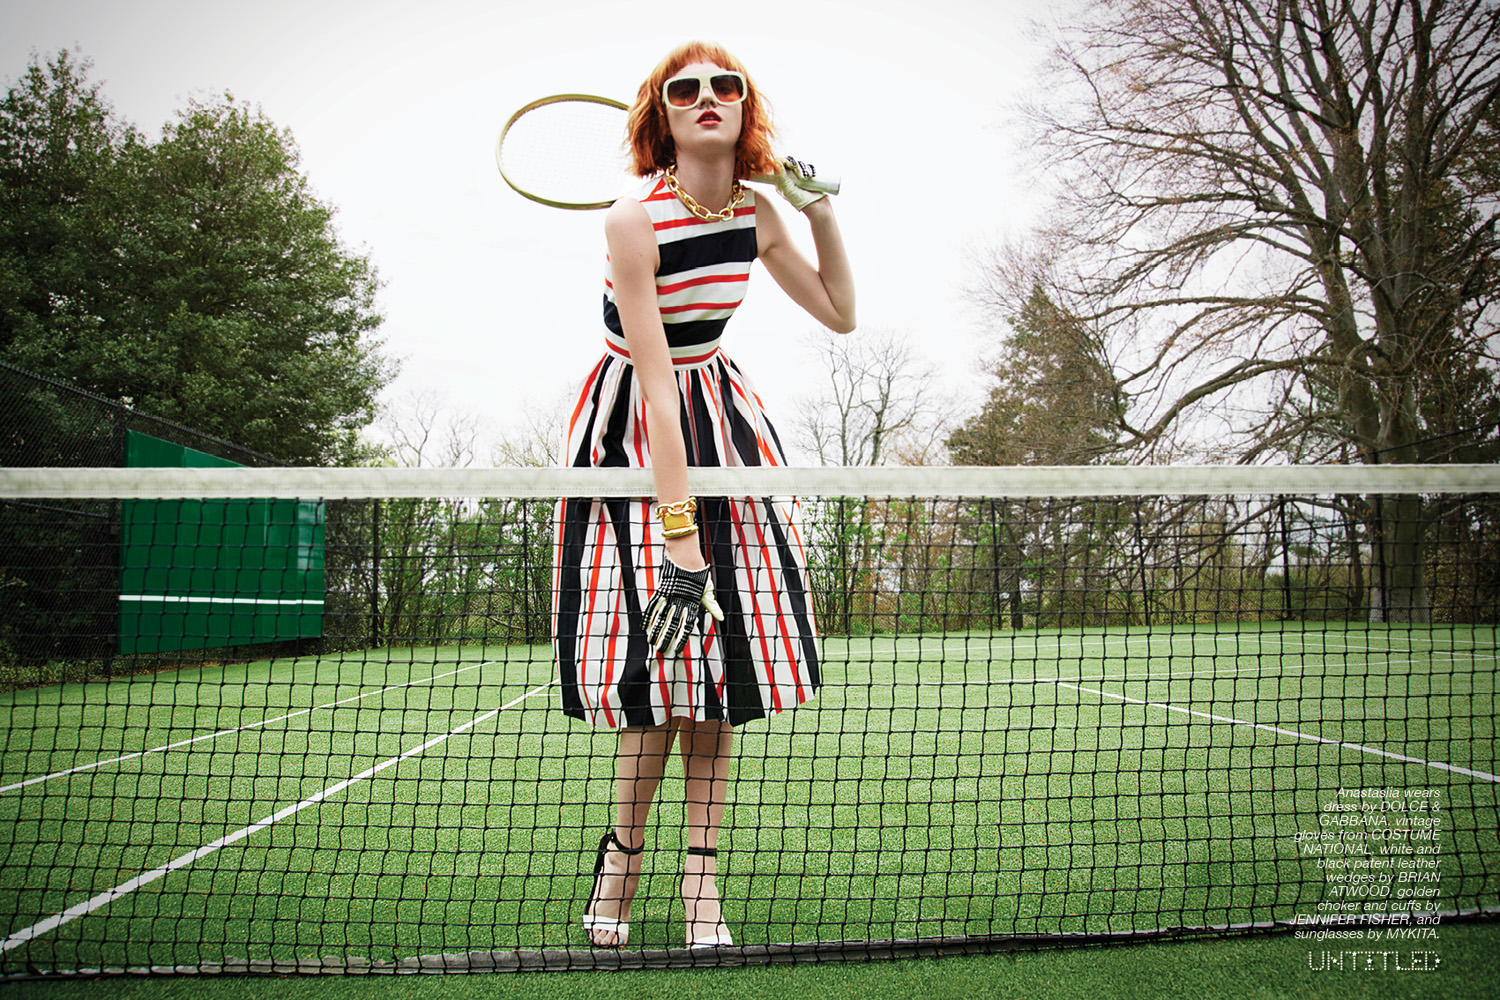 """Tennis Girls"" The Untitled Magazine Photography Liz Von Hoene"